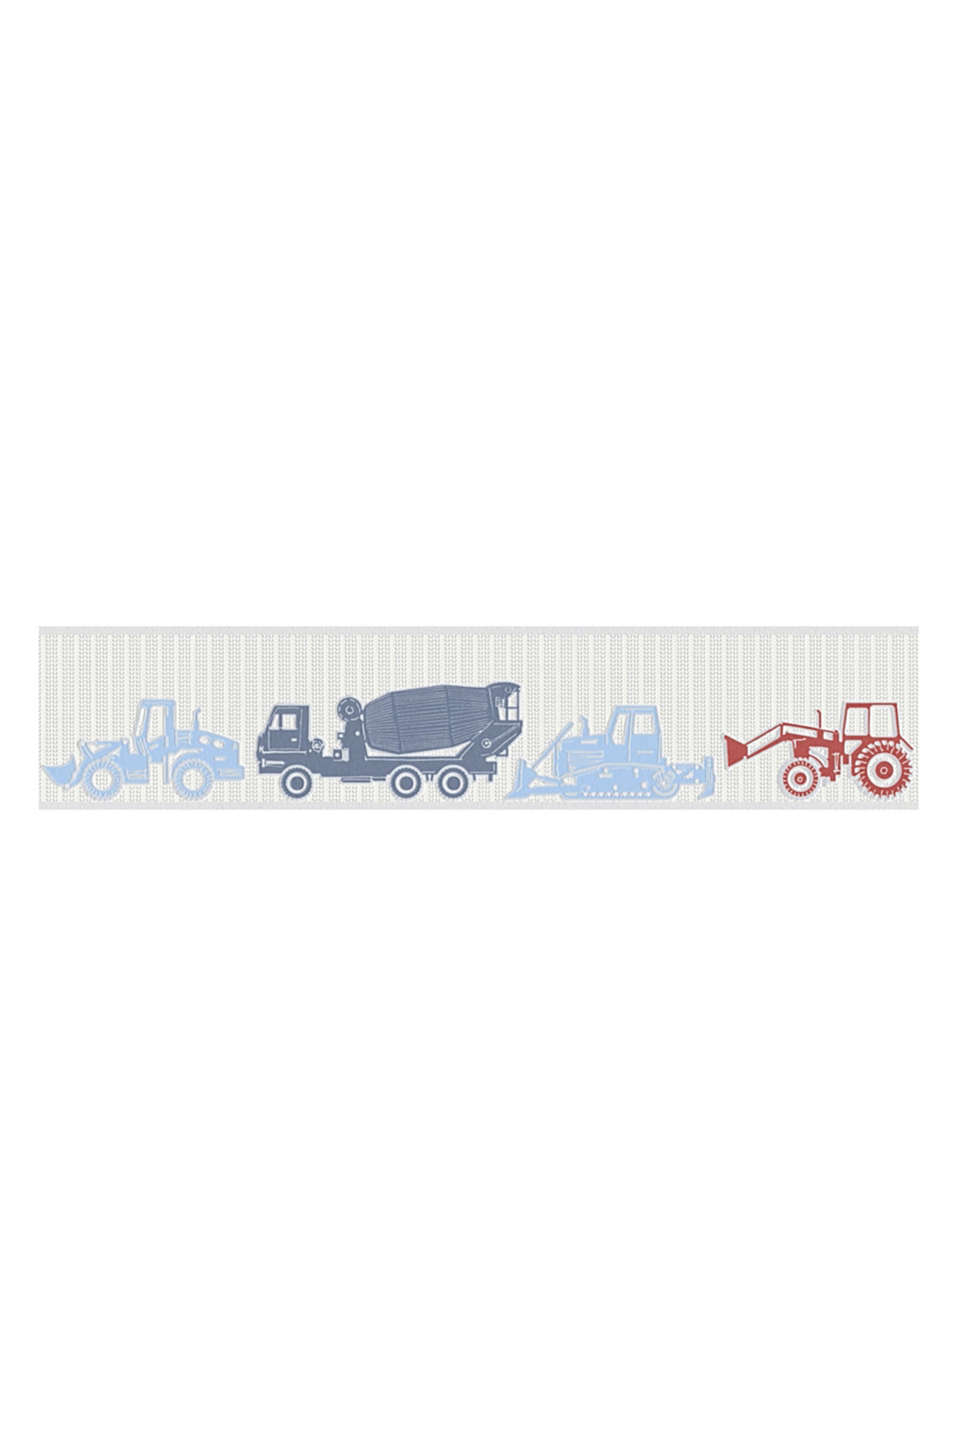 TRACTOR collection - perfect for little boys: excavators and tractors decorate this non-woven textile border.